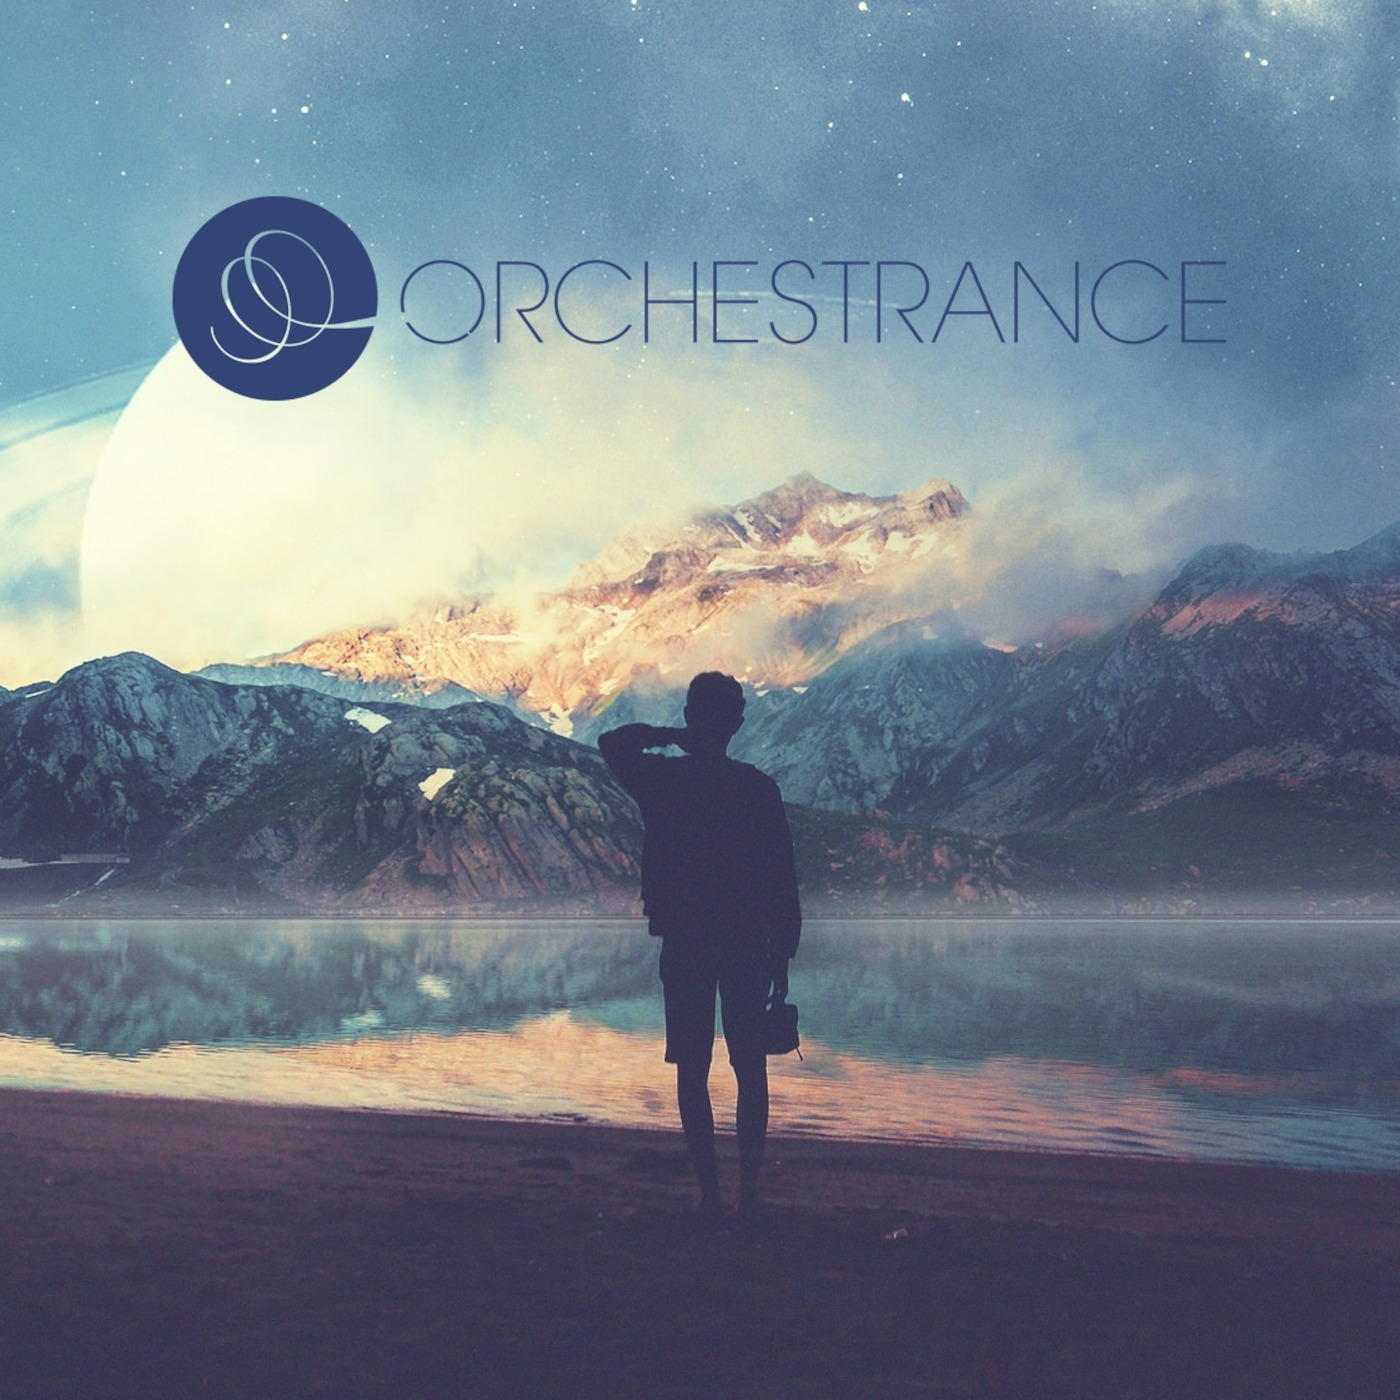 Orchestrance